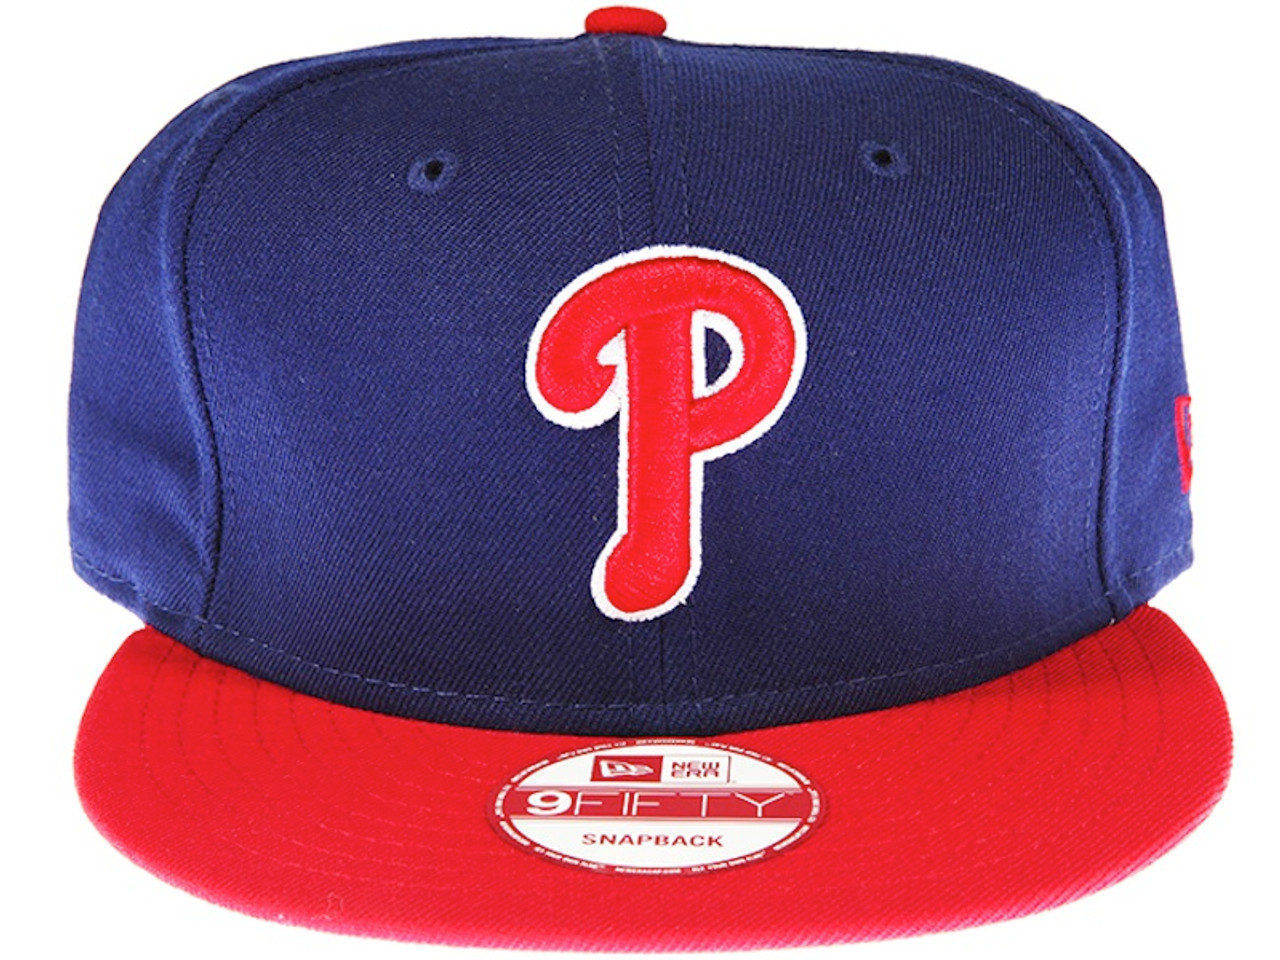 huge selection of 75172 91d35 Philadelphia Phillies 2-Tone Blue and Red New Era 9FIFTY MLB Snapback Hat